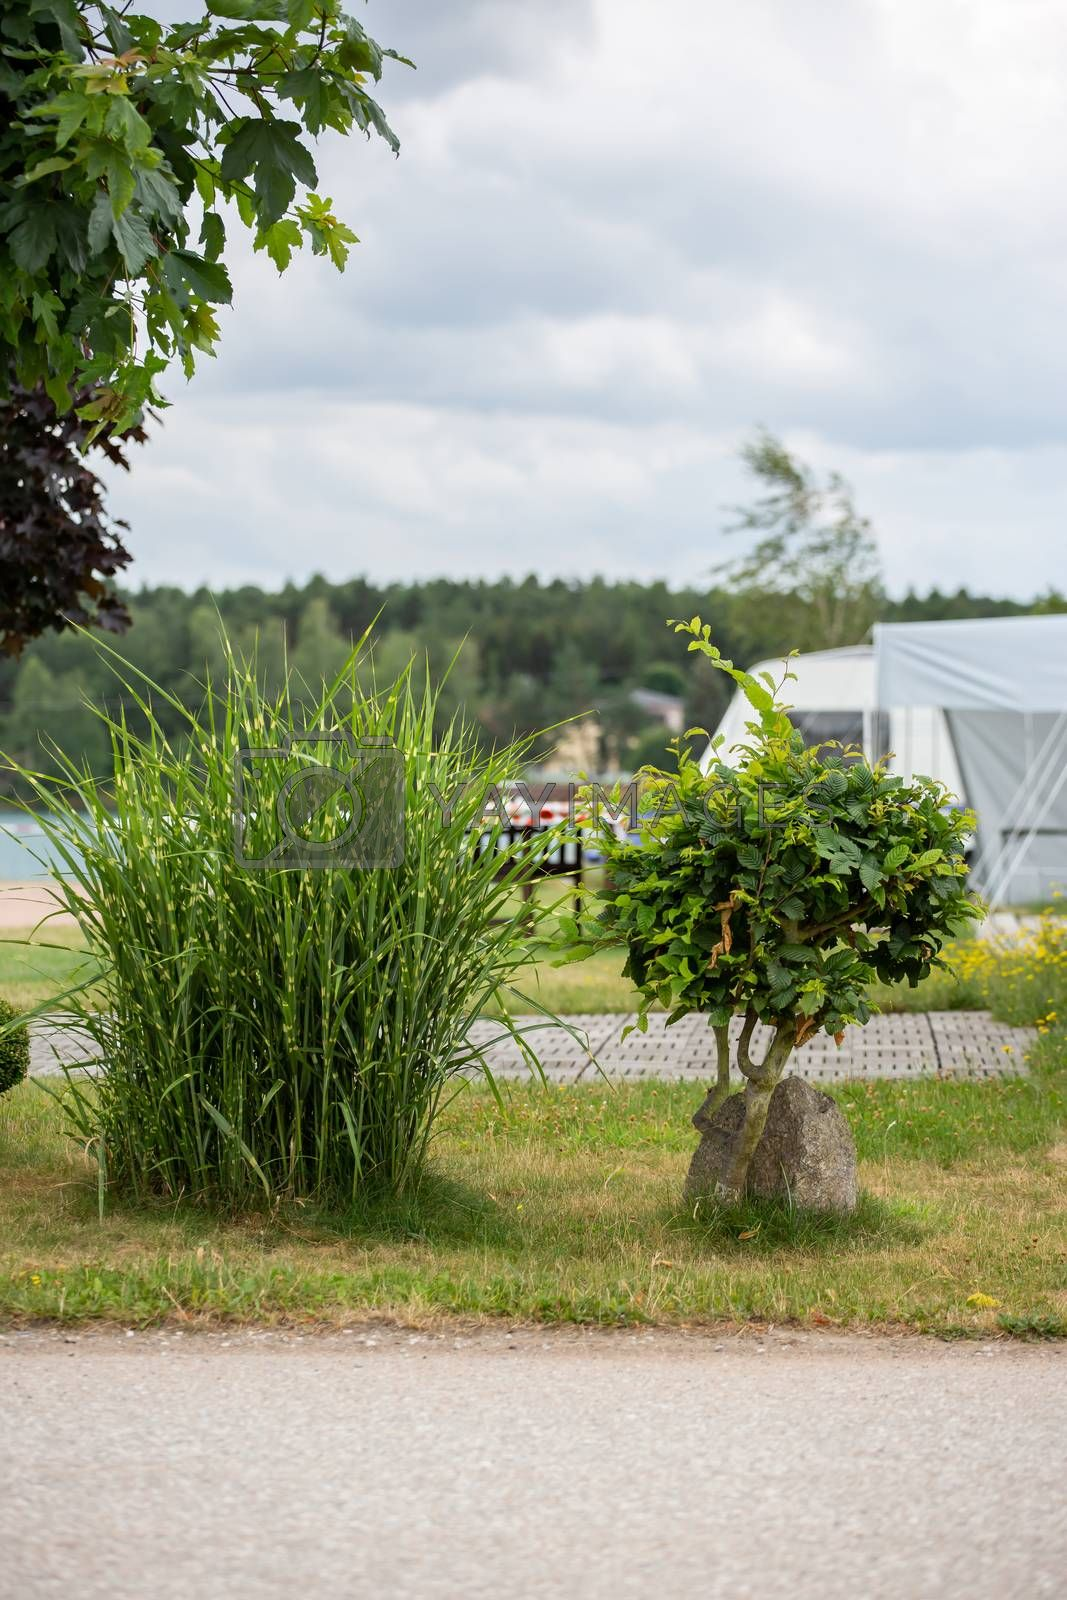 Impressions on a campsite on a sunny day by Sandra Fotodesign